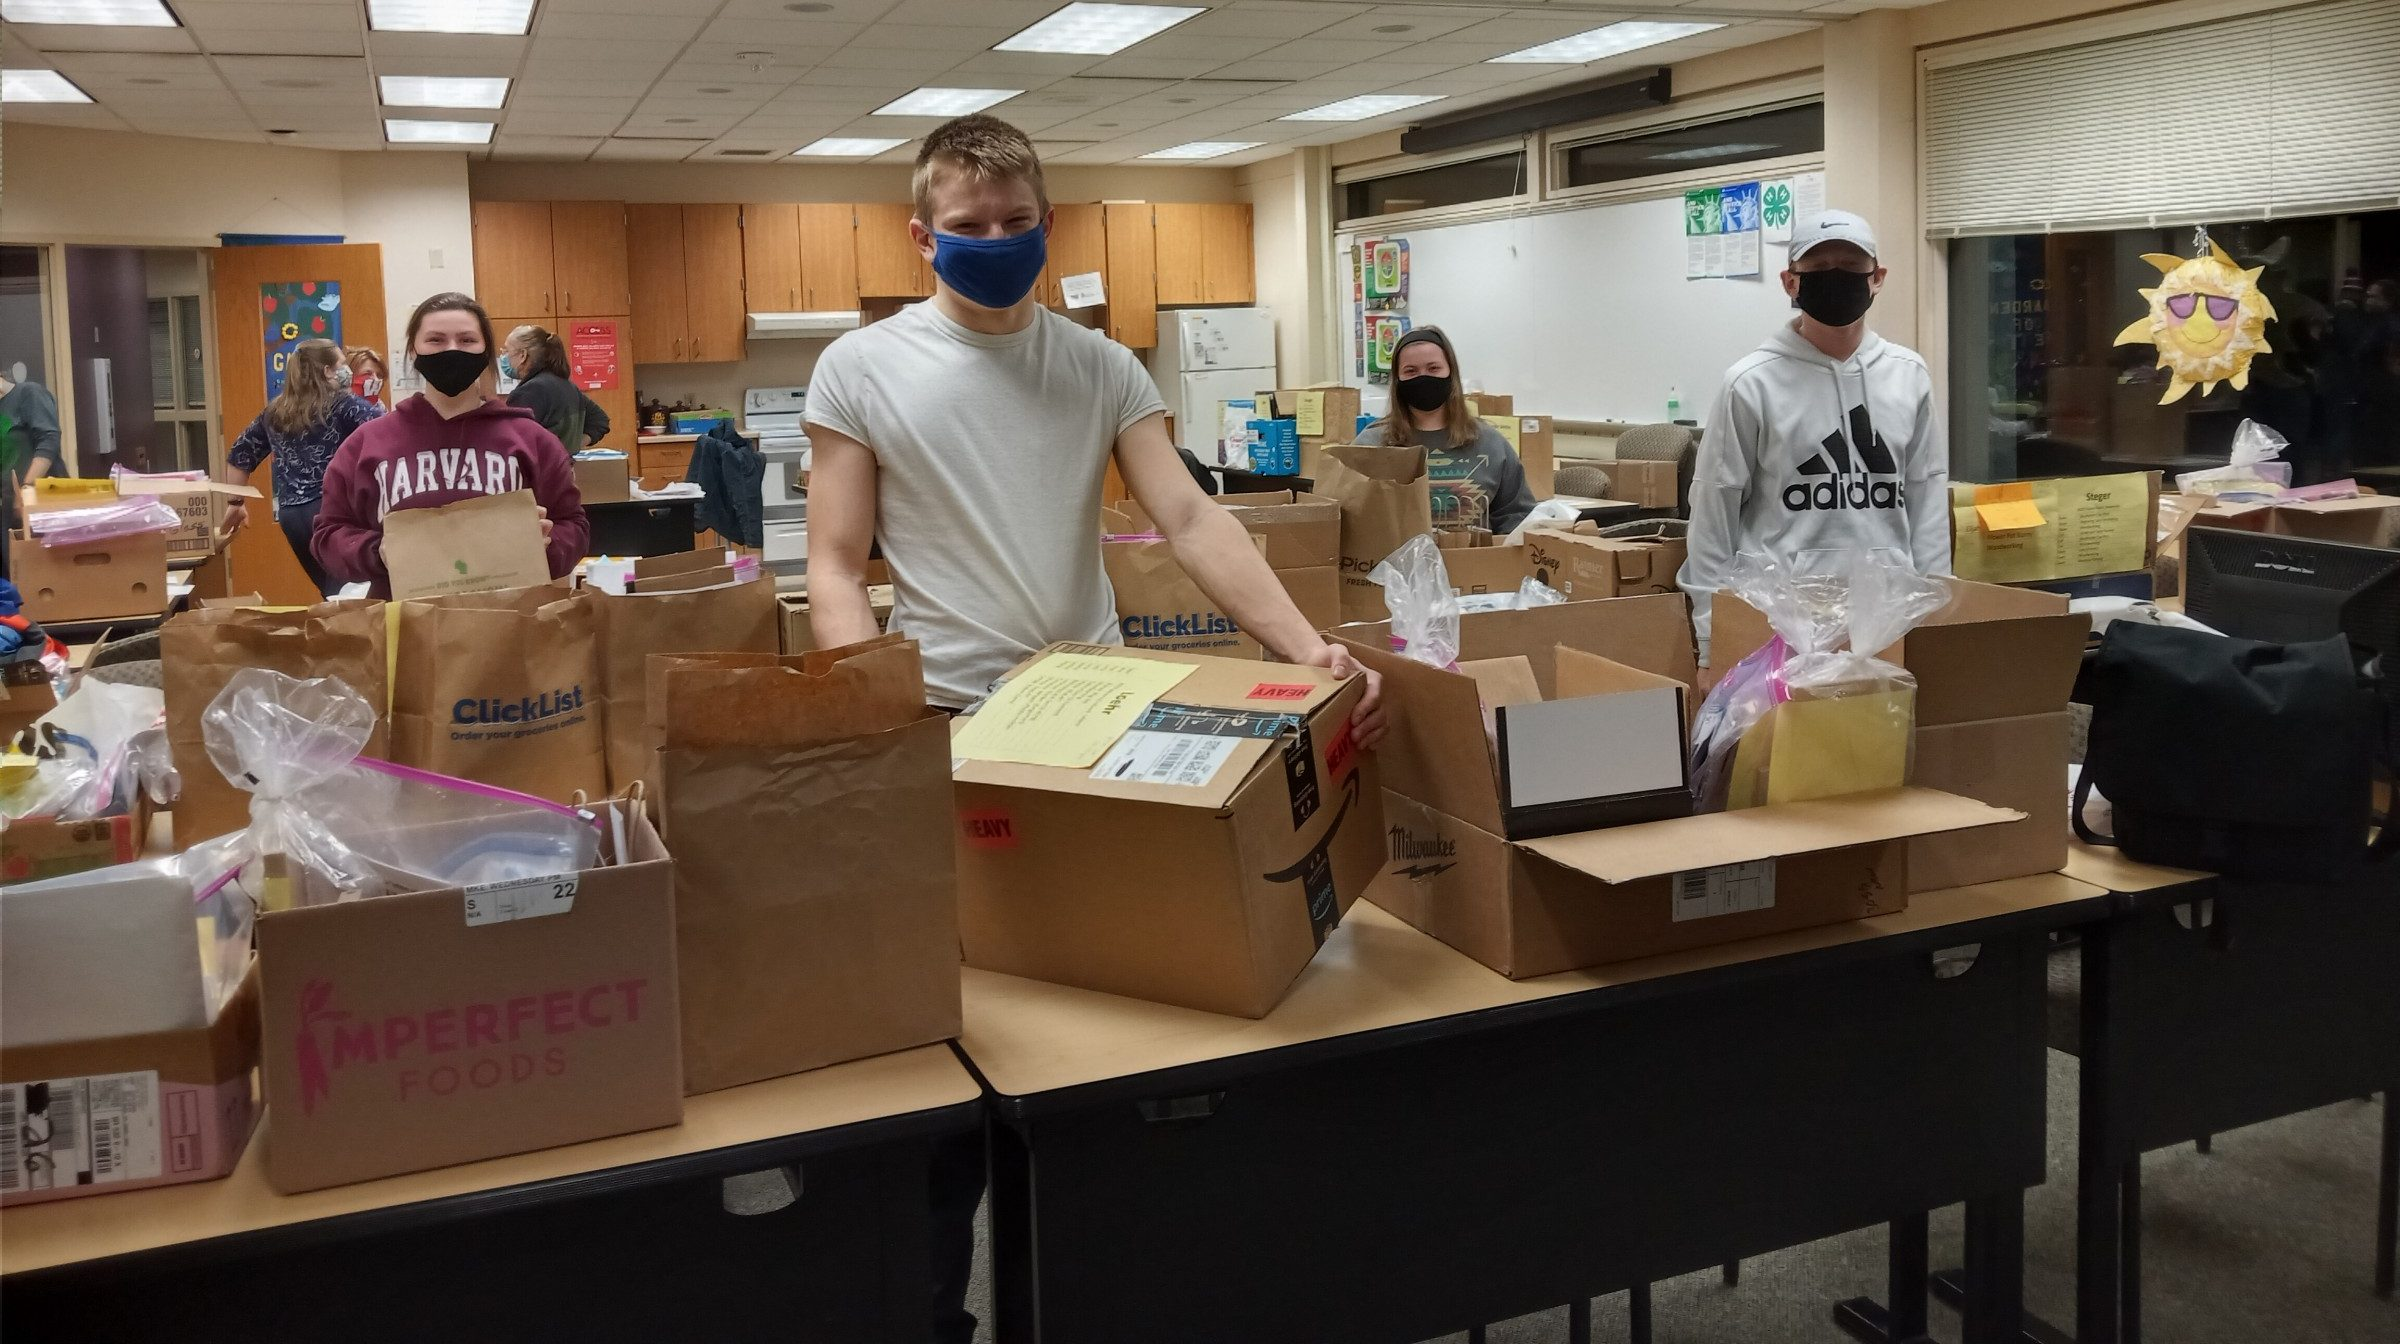 Teen Leaders preparing project kits for Family Learning Day